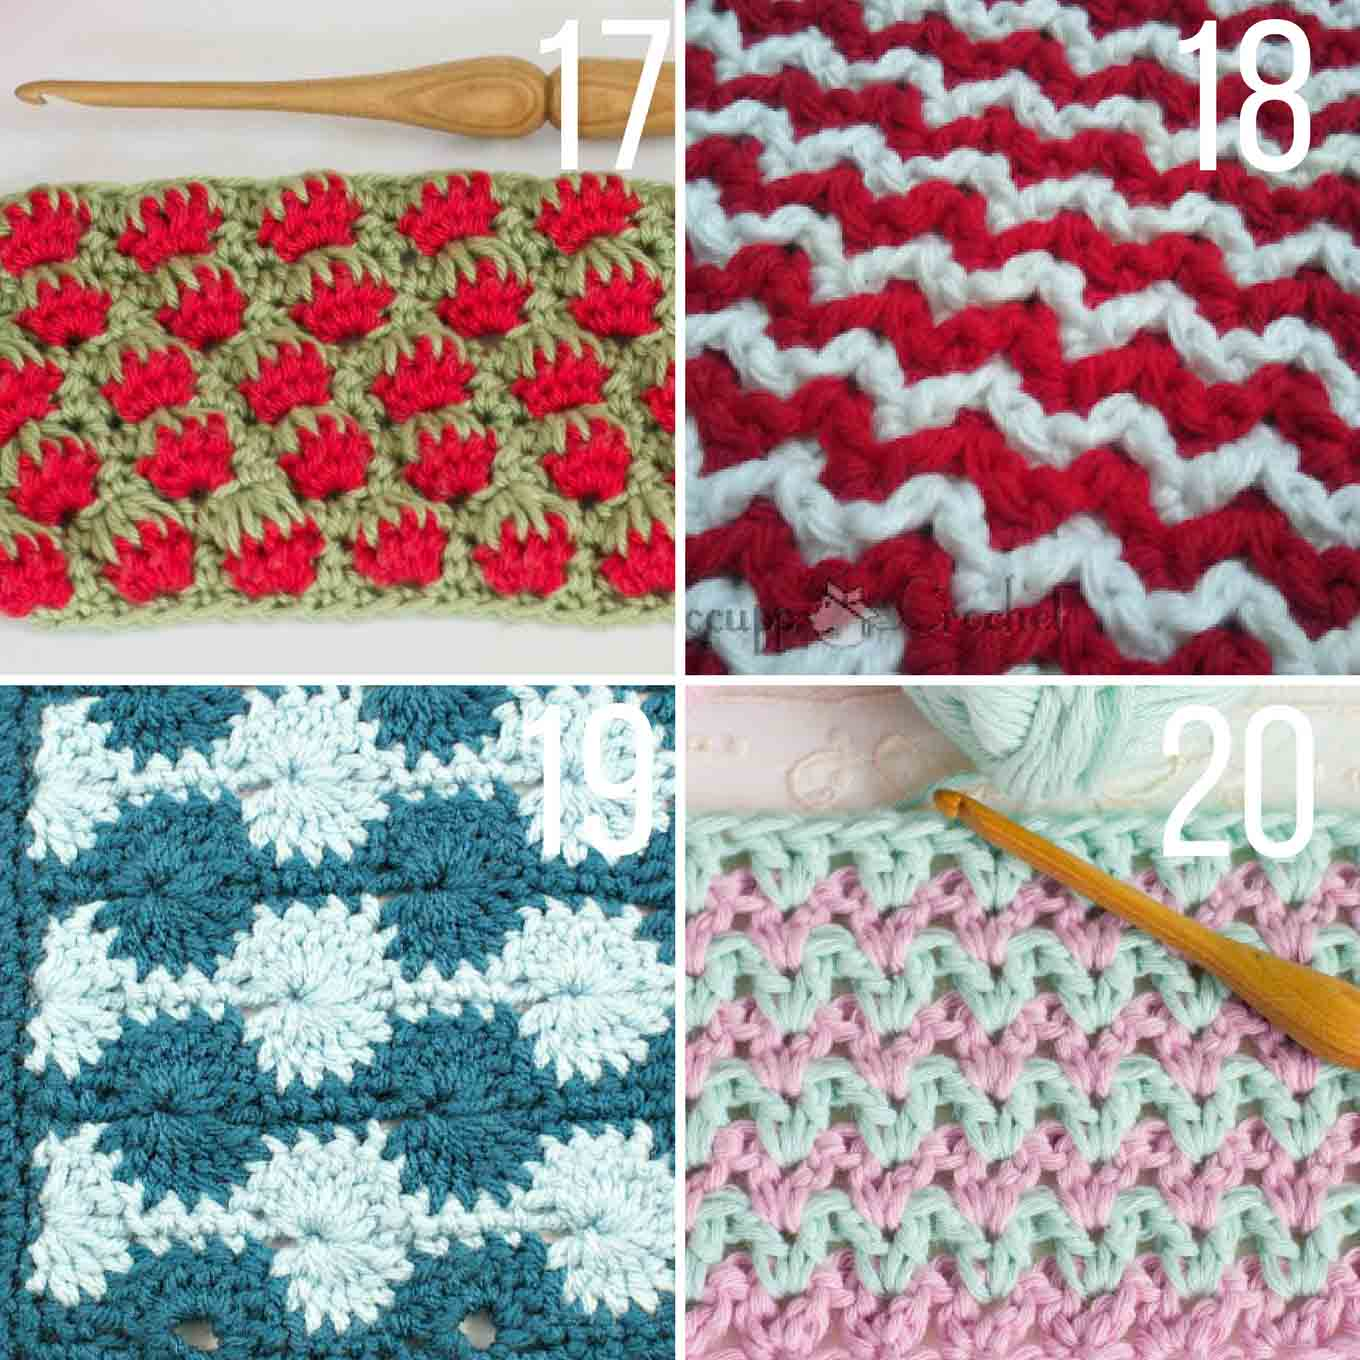 Collection of crochet stitches that uses two or more colors of yarn at once.